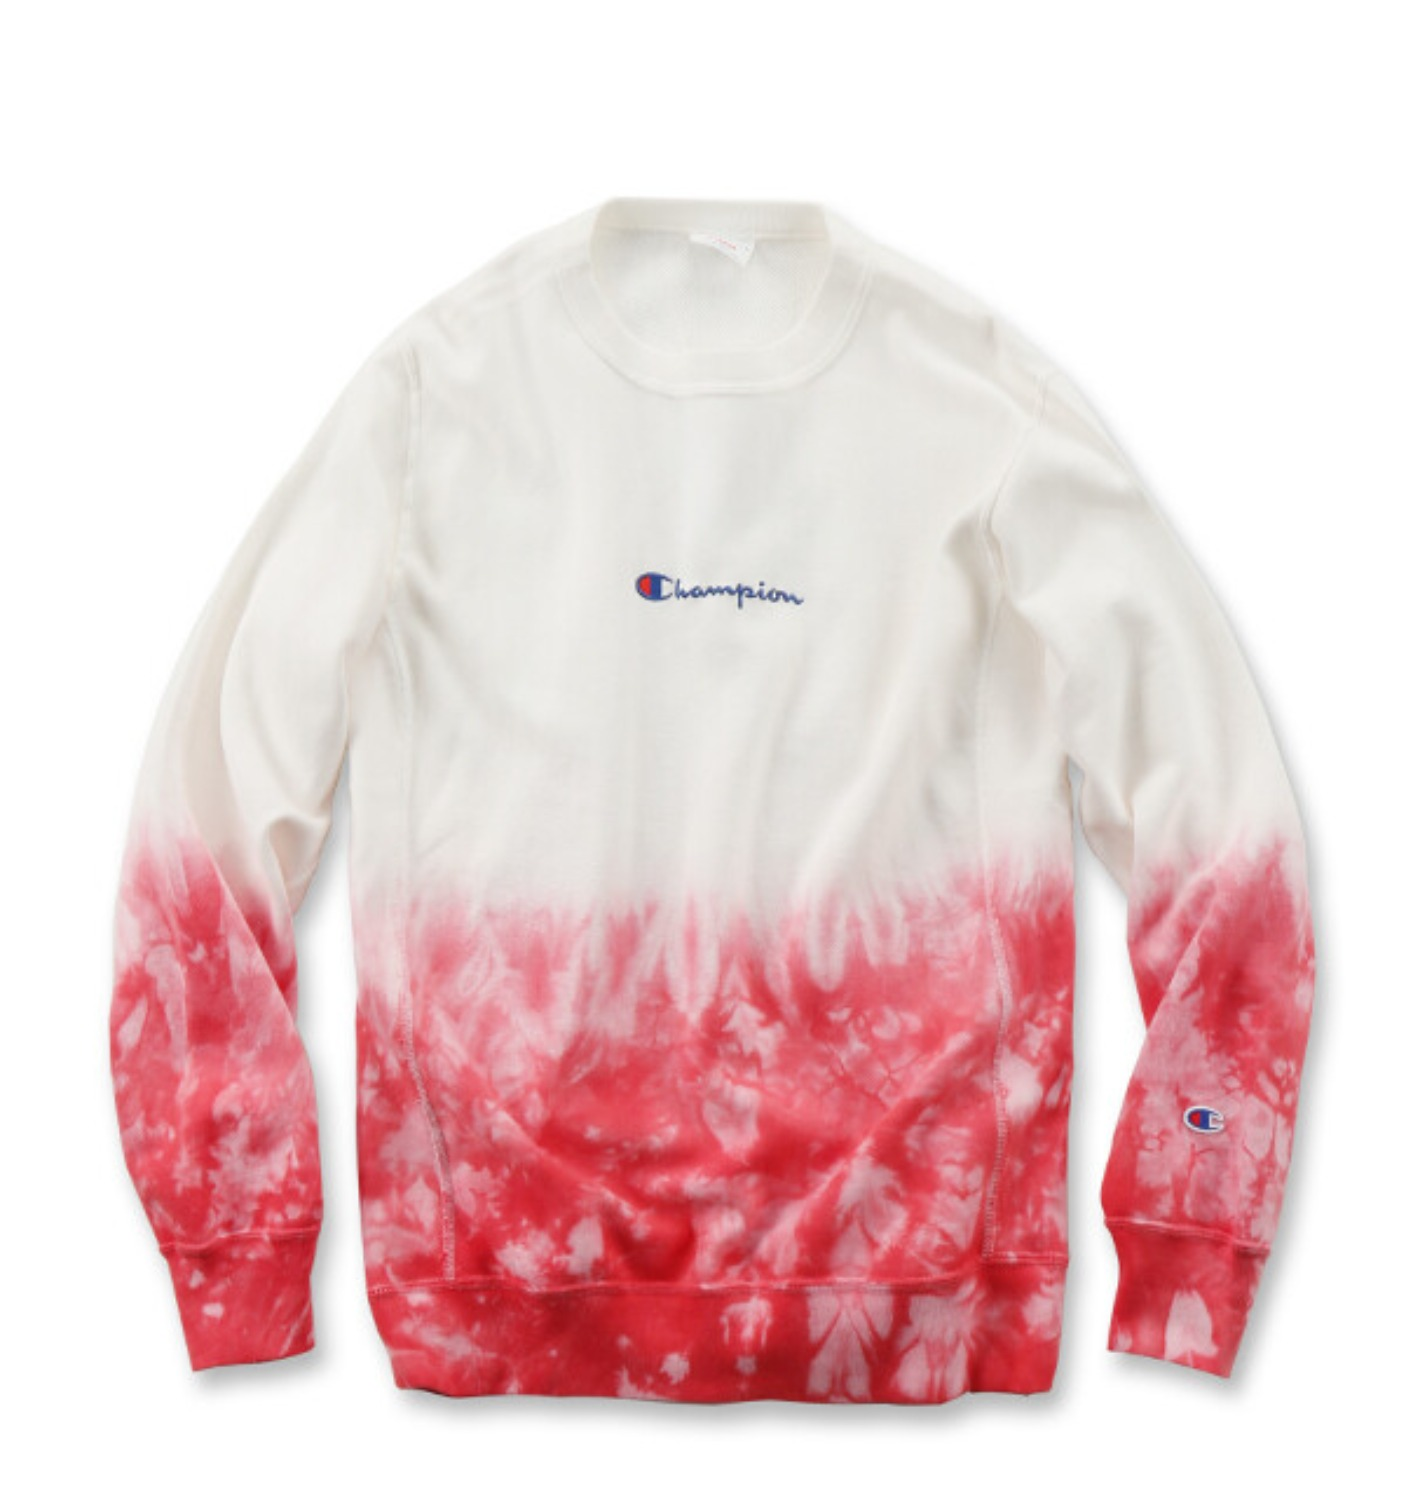 REVERSE WEAVE 10OZ TIE DYE CREW NECK SWEAT WHITE/RED(C3-Q012)